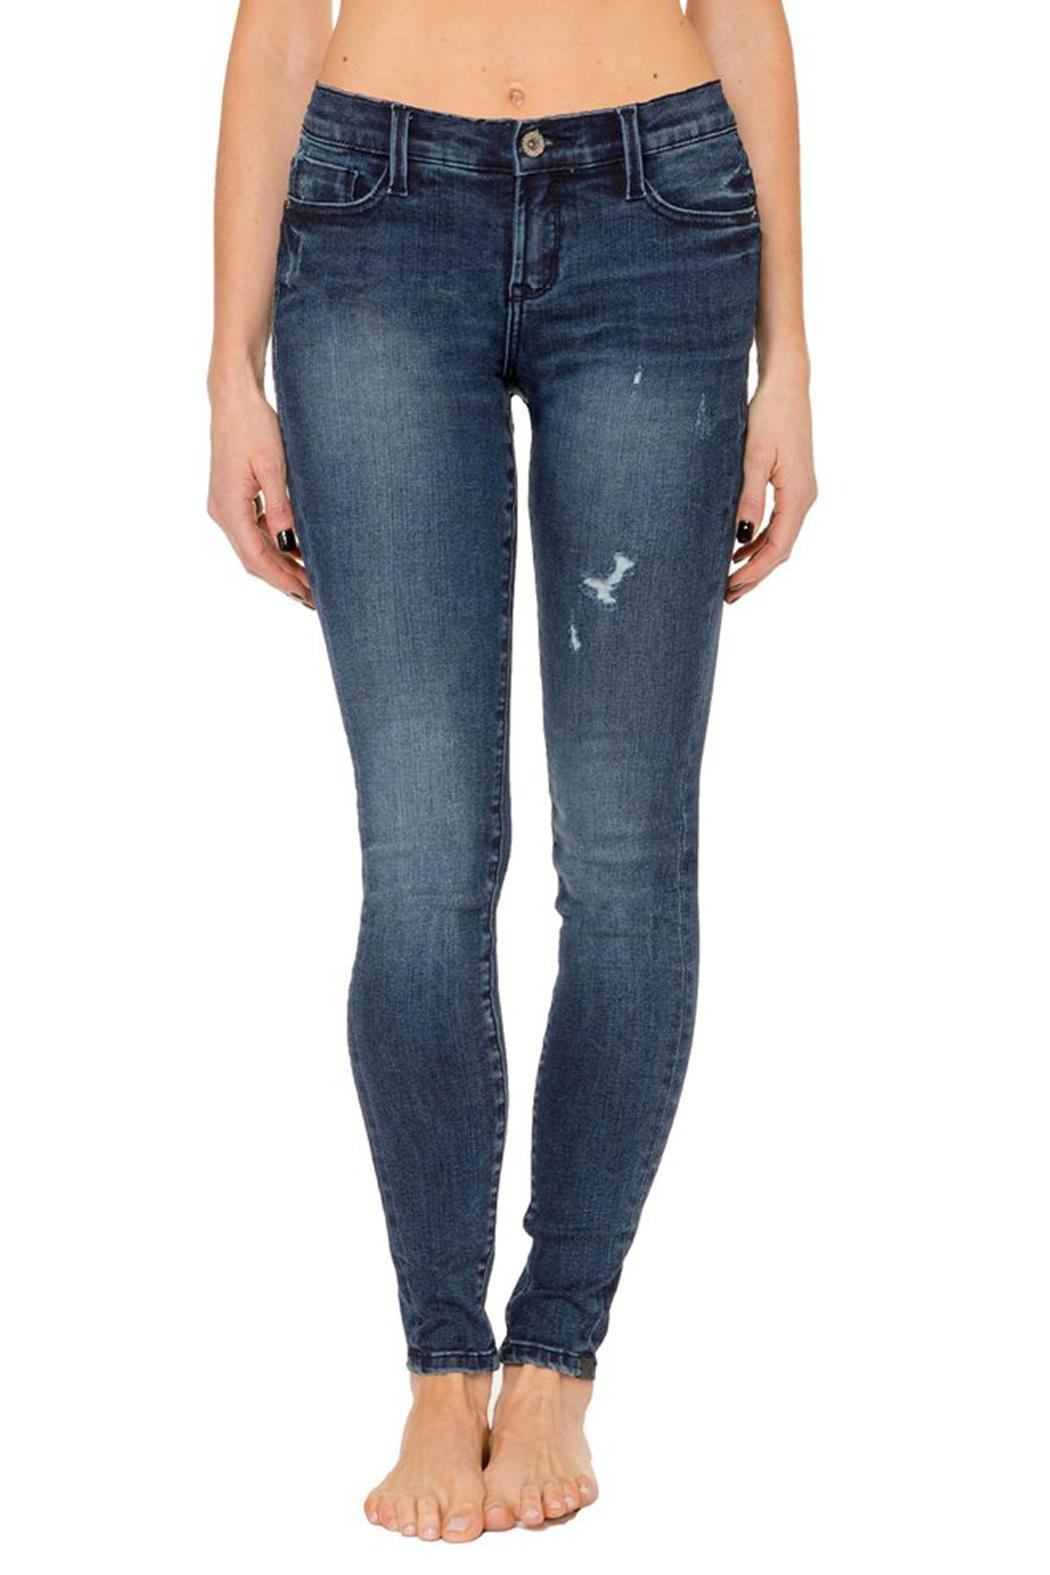 Nancy Rose Mid-Rise Skinny Jean - Front Cropped Image